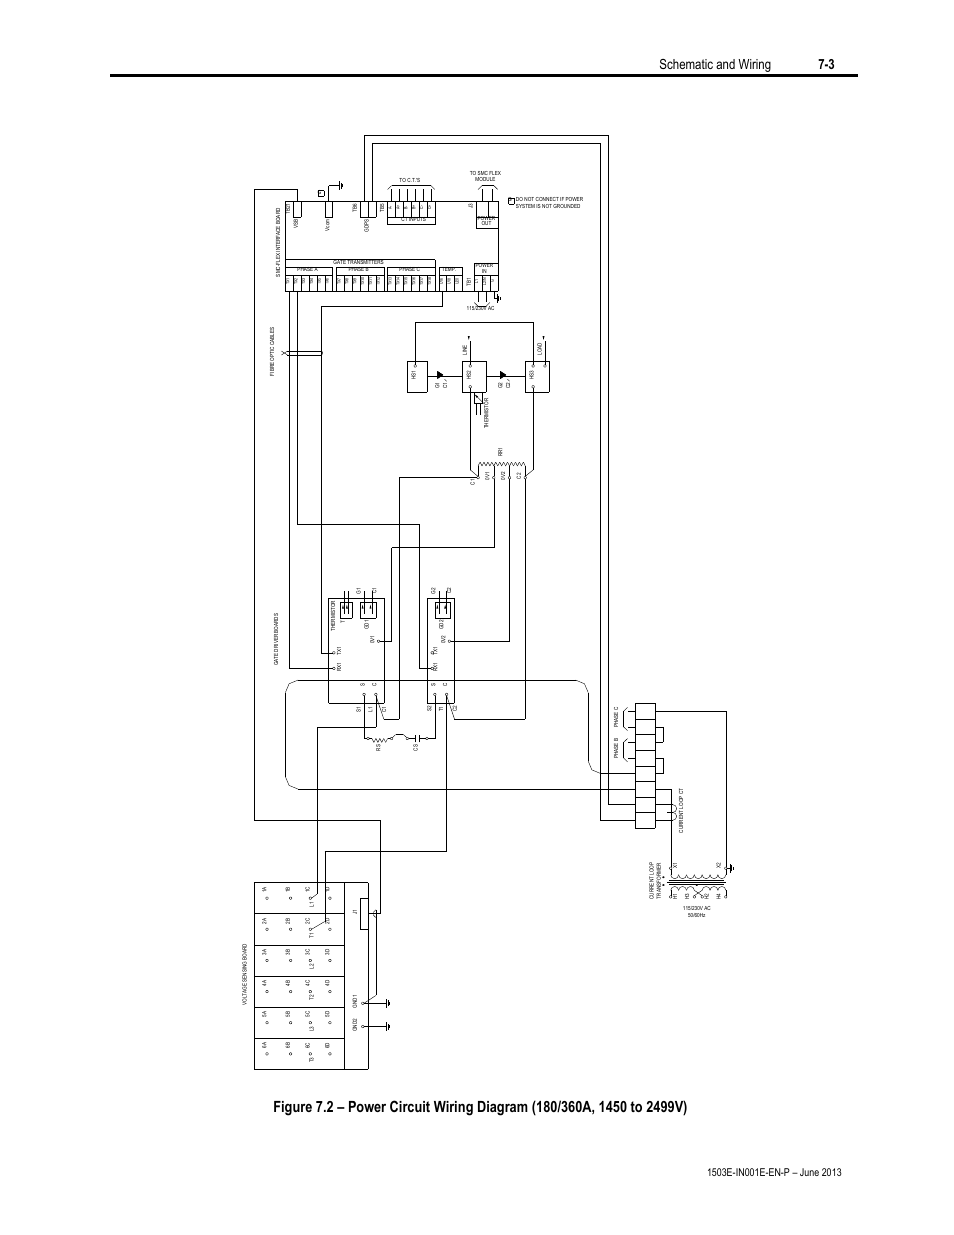 DIAGRAM] New Trailer Problems Page 1 Wiring Diagram FULL Version HD Quality Wiring  Diagram - DIAGRAMCABLE.AZCLEAN.FRdiagramcable.azclean.fr